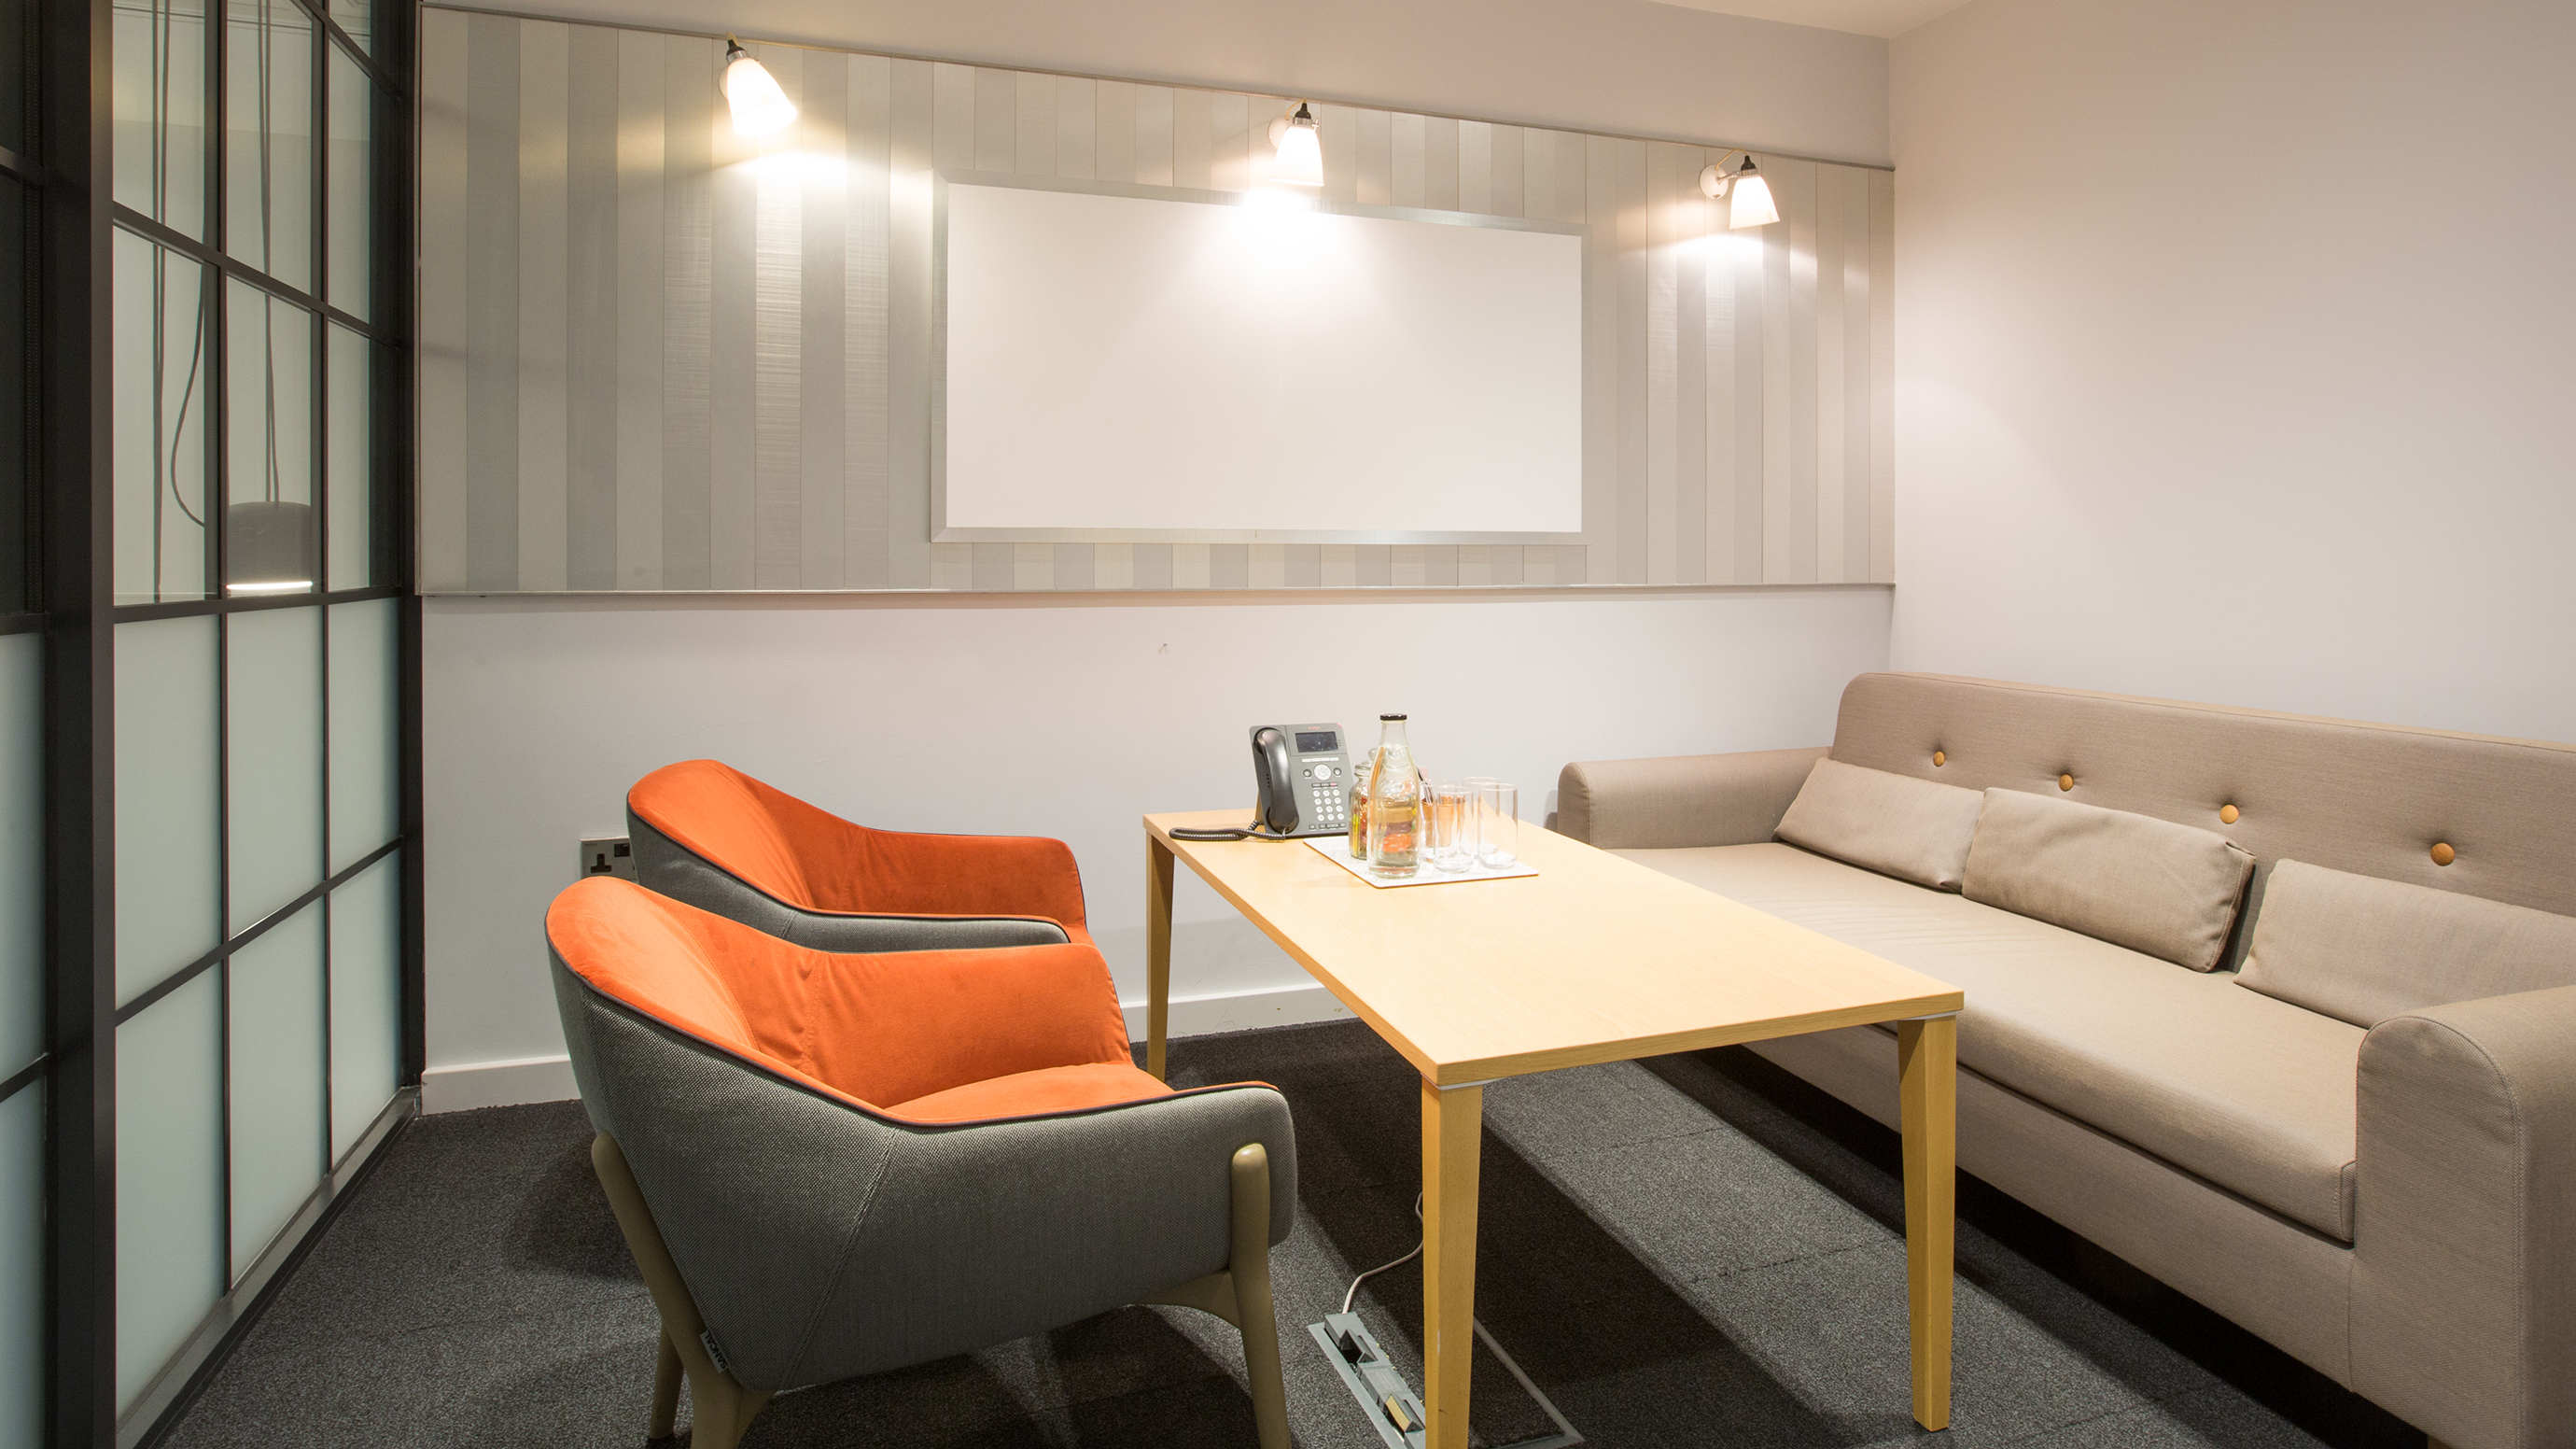 Small meeting room with wooden table sofa and orange chairs at TOG building 50 Liverpool Street London